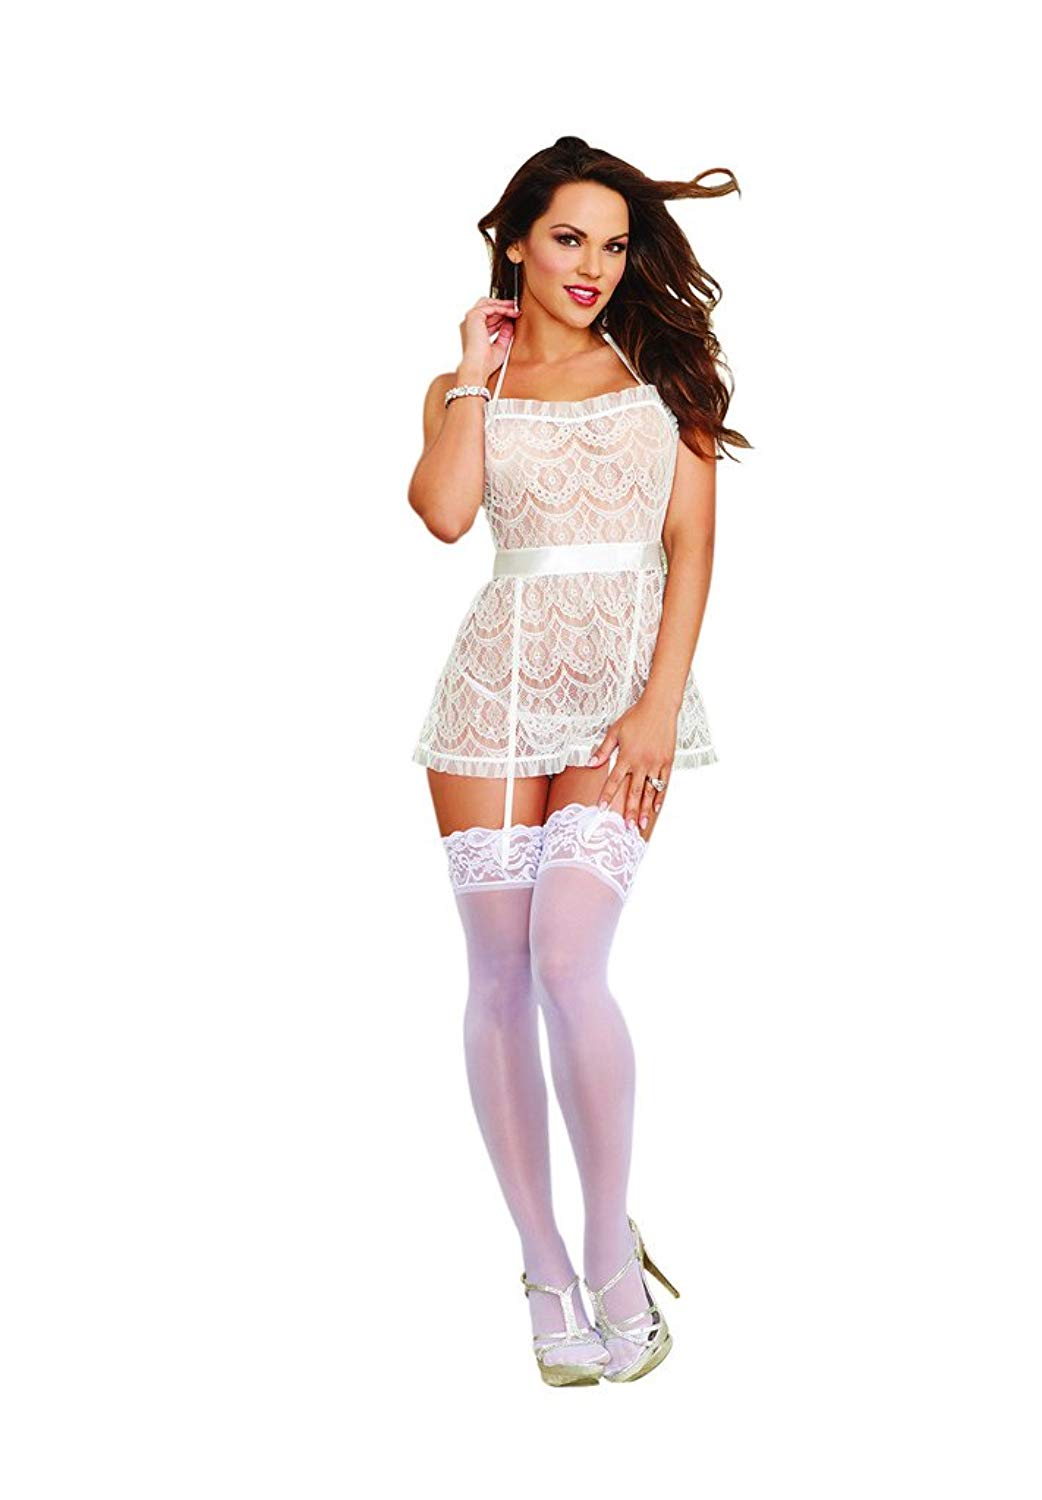 d5ebaadb158bb Slauson Supermall Women s Women s Flirty Sexy Delicate Lace Apron Babydoll  and Heart Cut-Out Panty by Dreamgirl